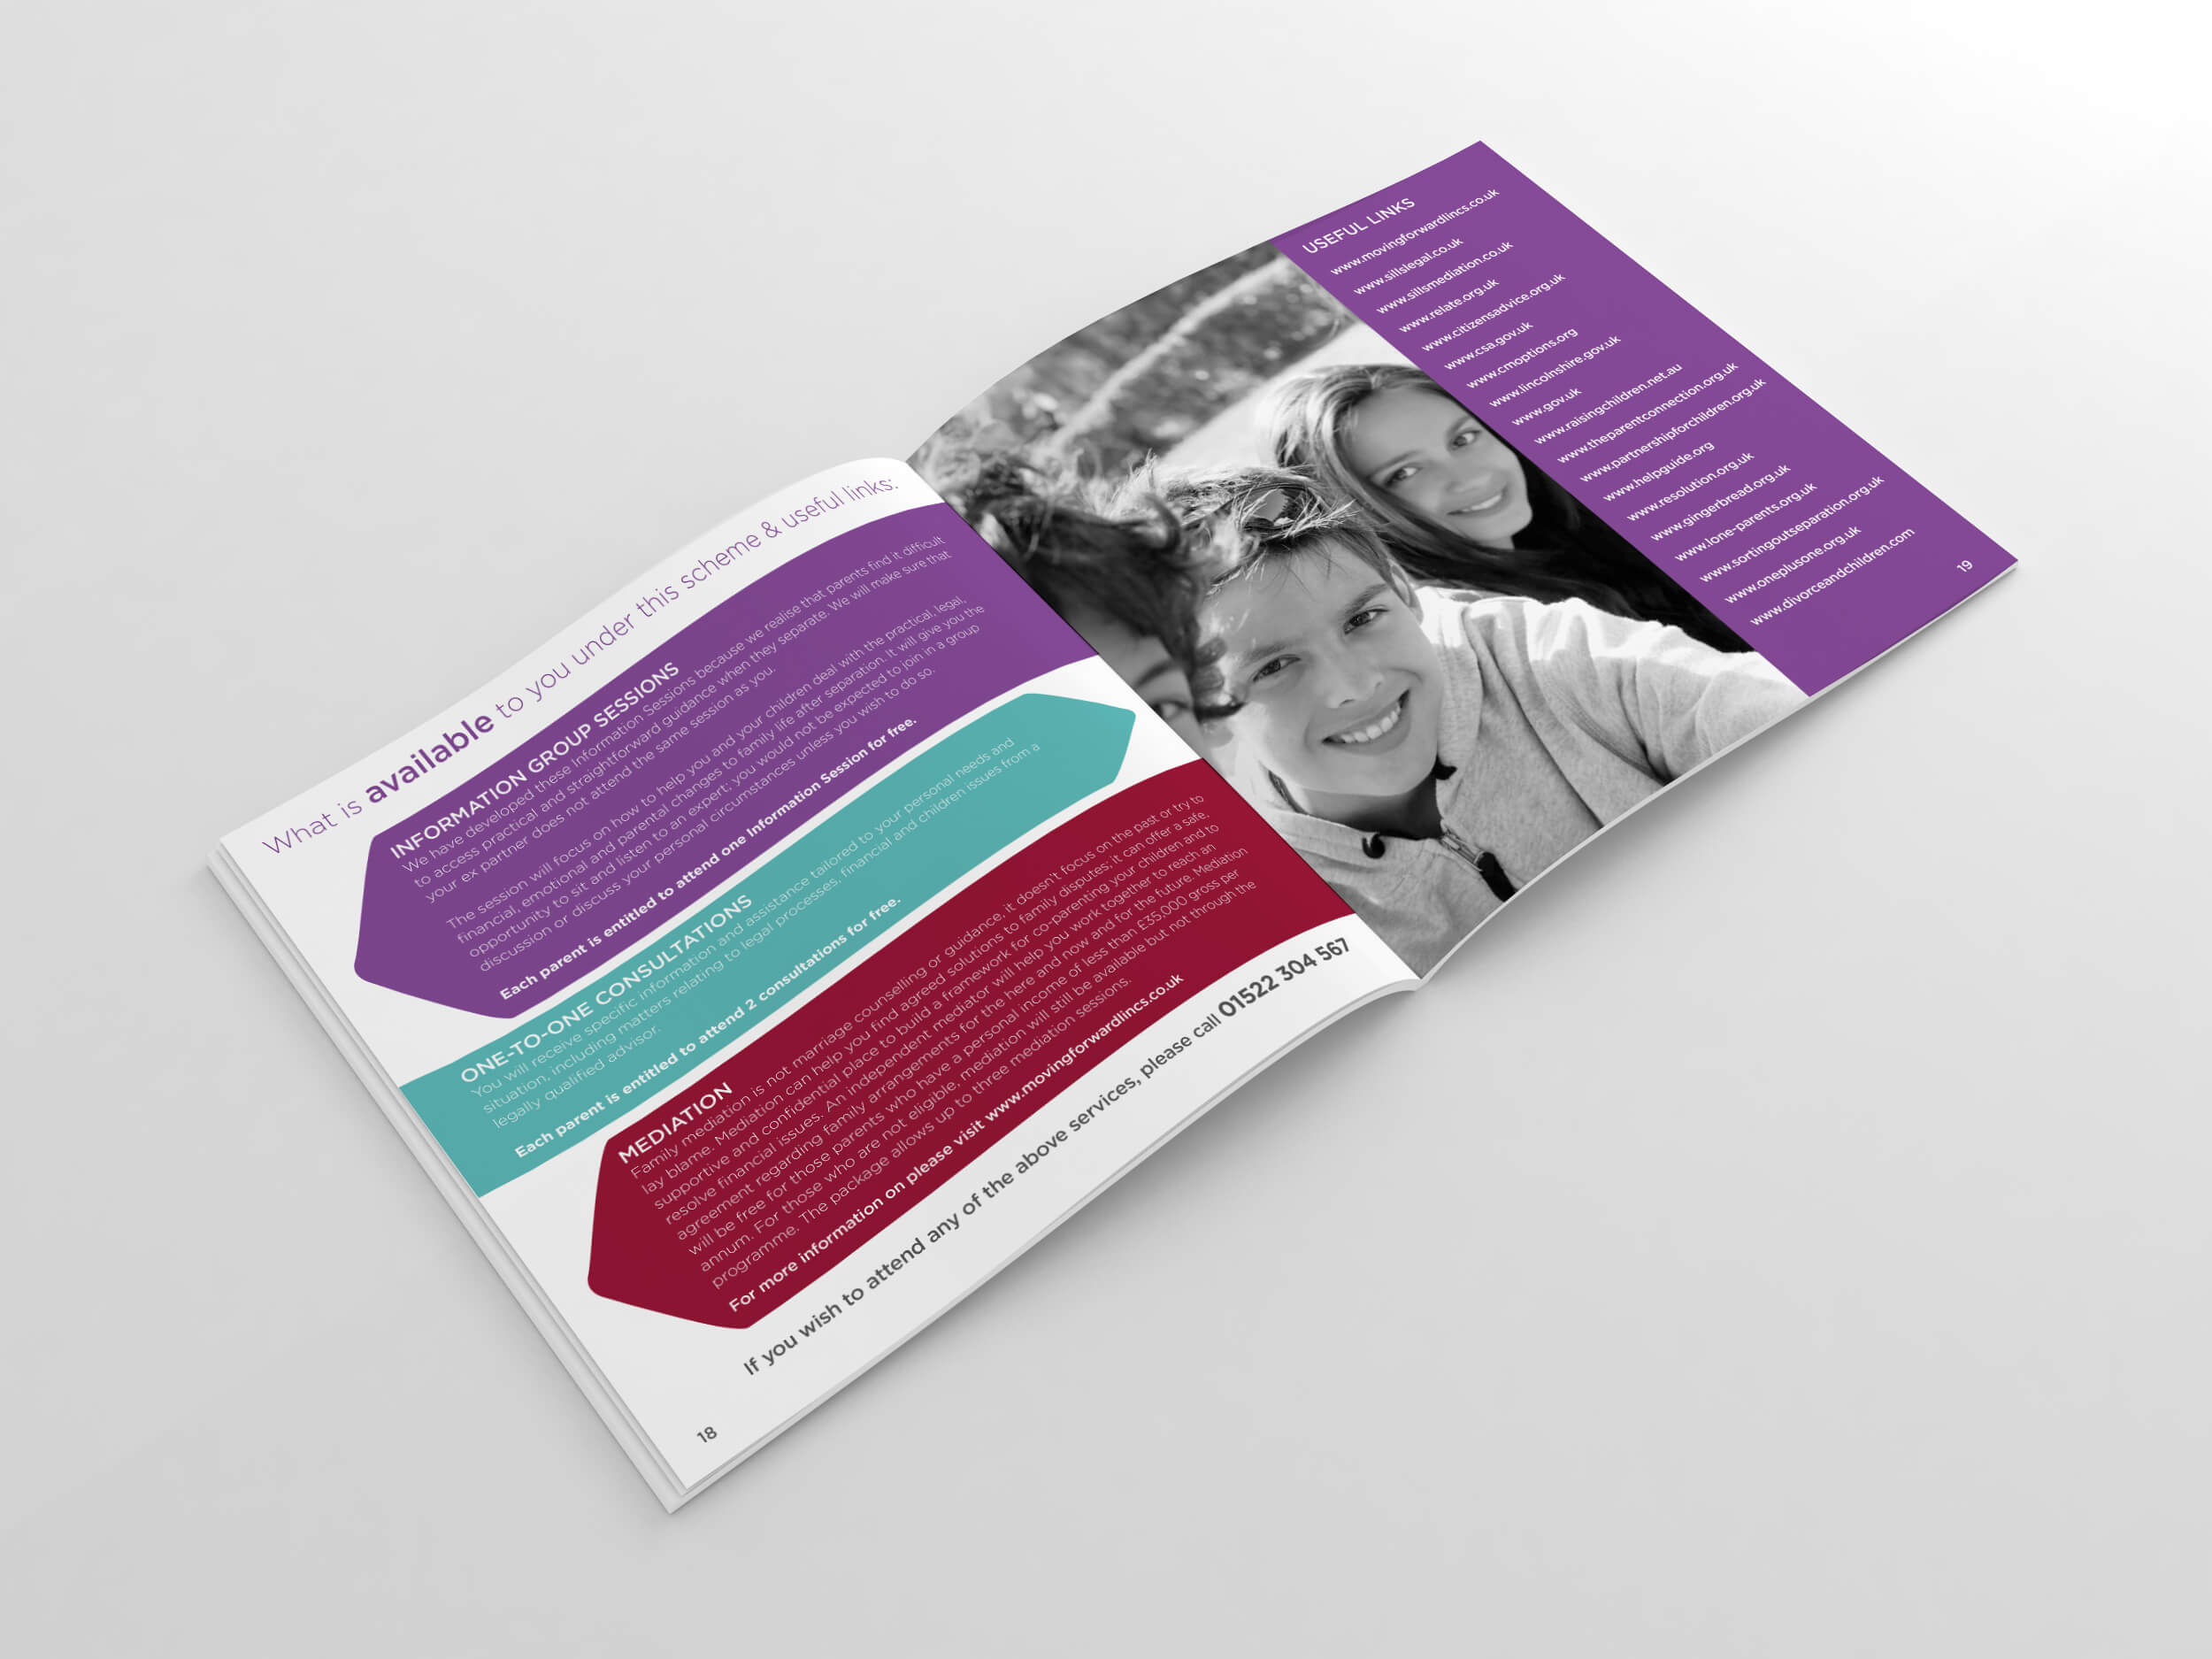 Sills-And-Betteridge-Moving-Forward-Brochure-2